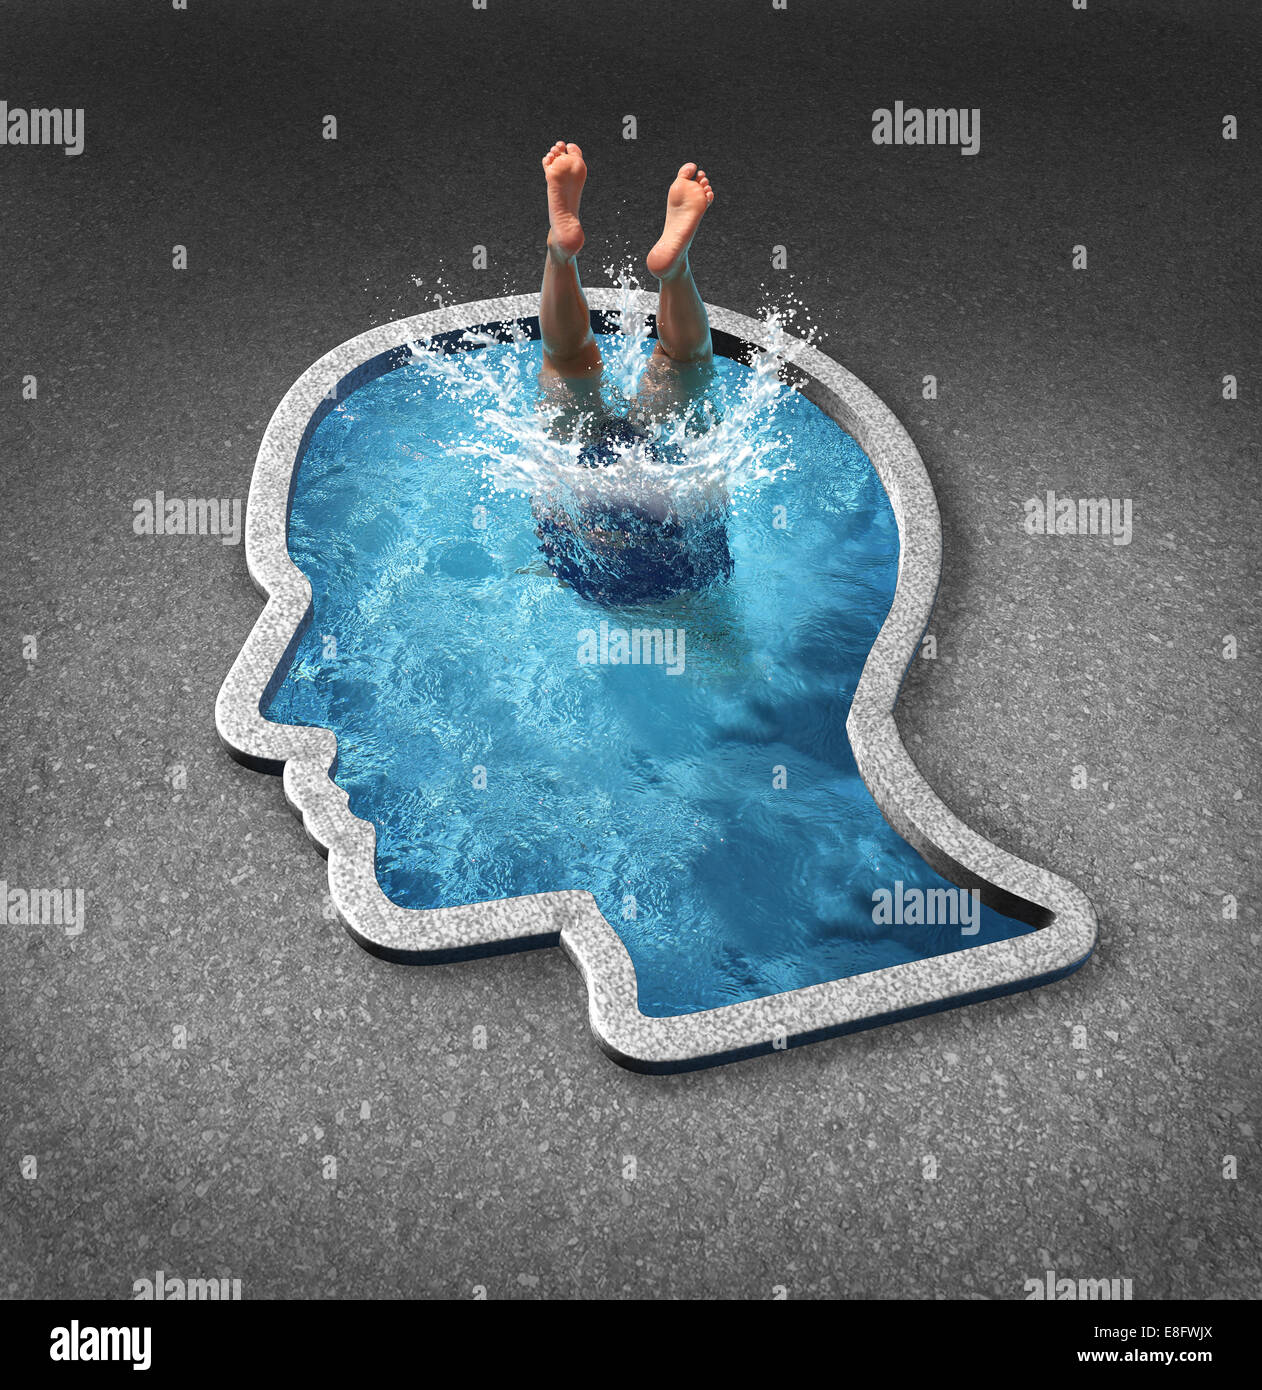 Deep thinking and soul searching concept with a person diving into a swimming pool shaped as a human face as a symbol - Stock Image